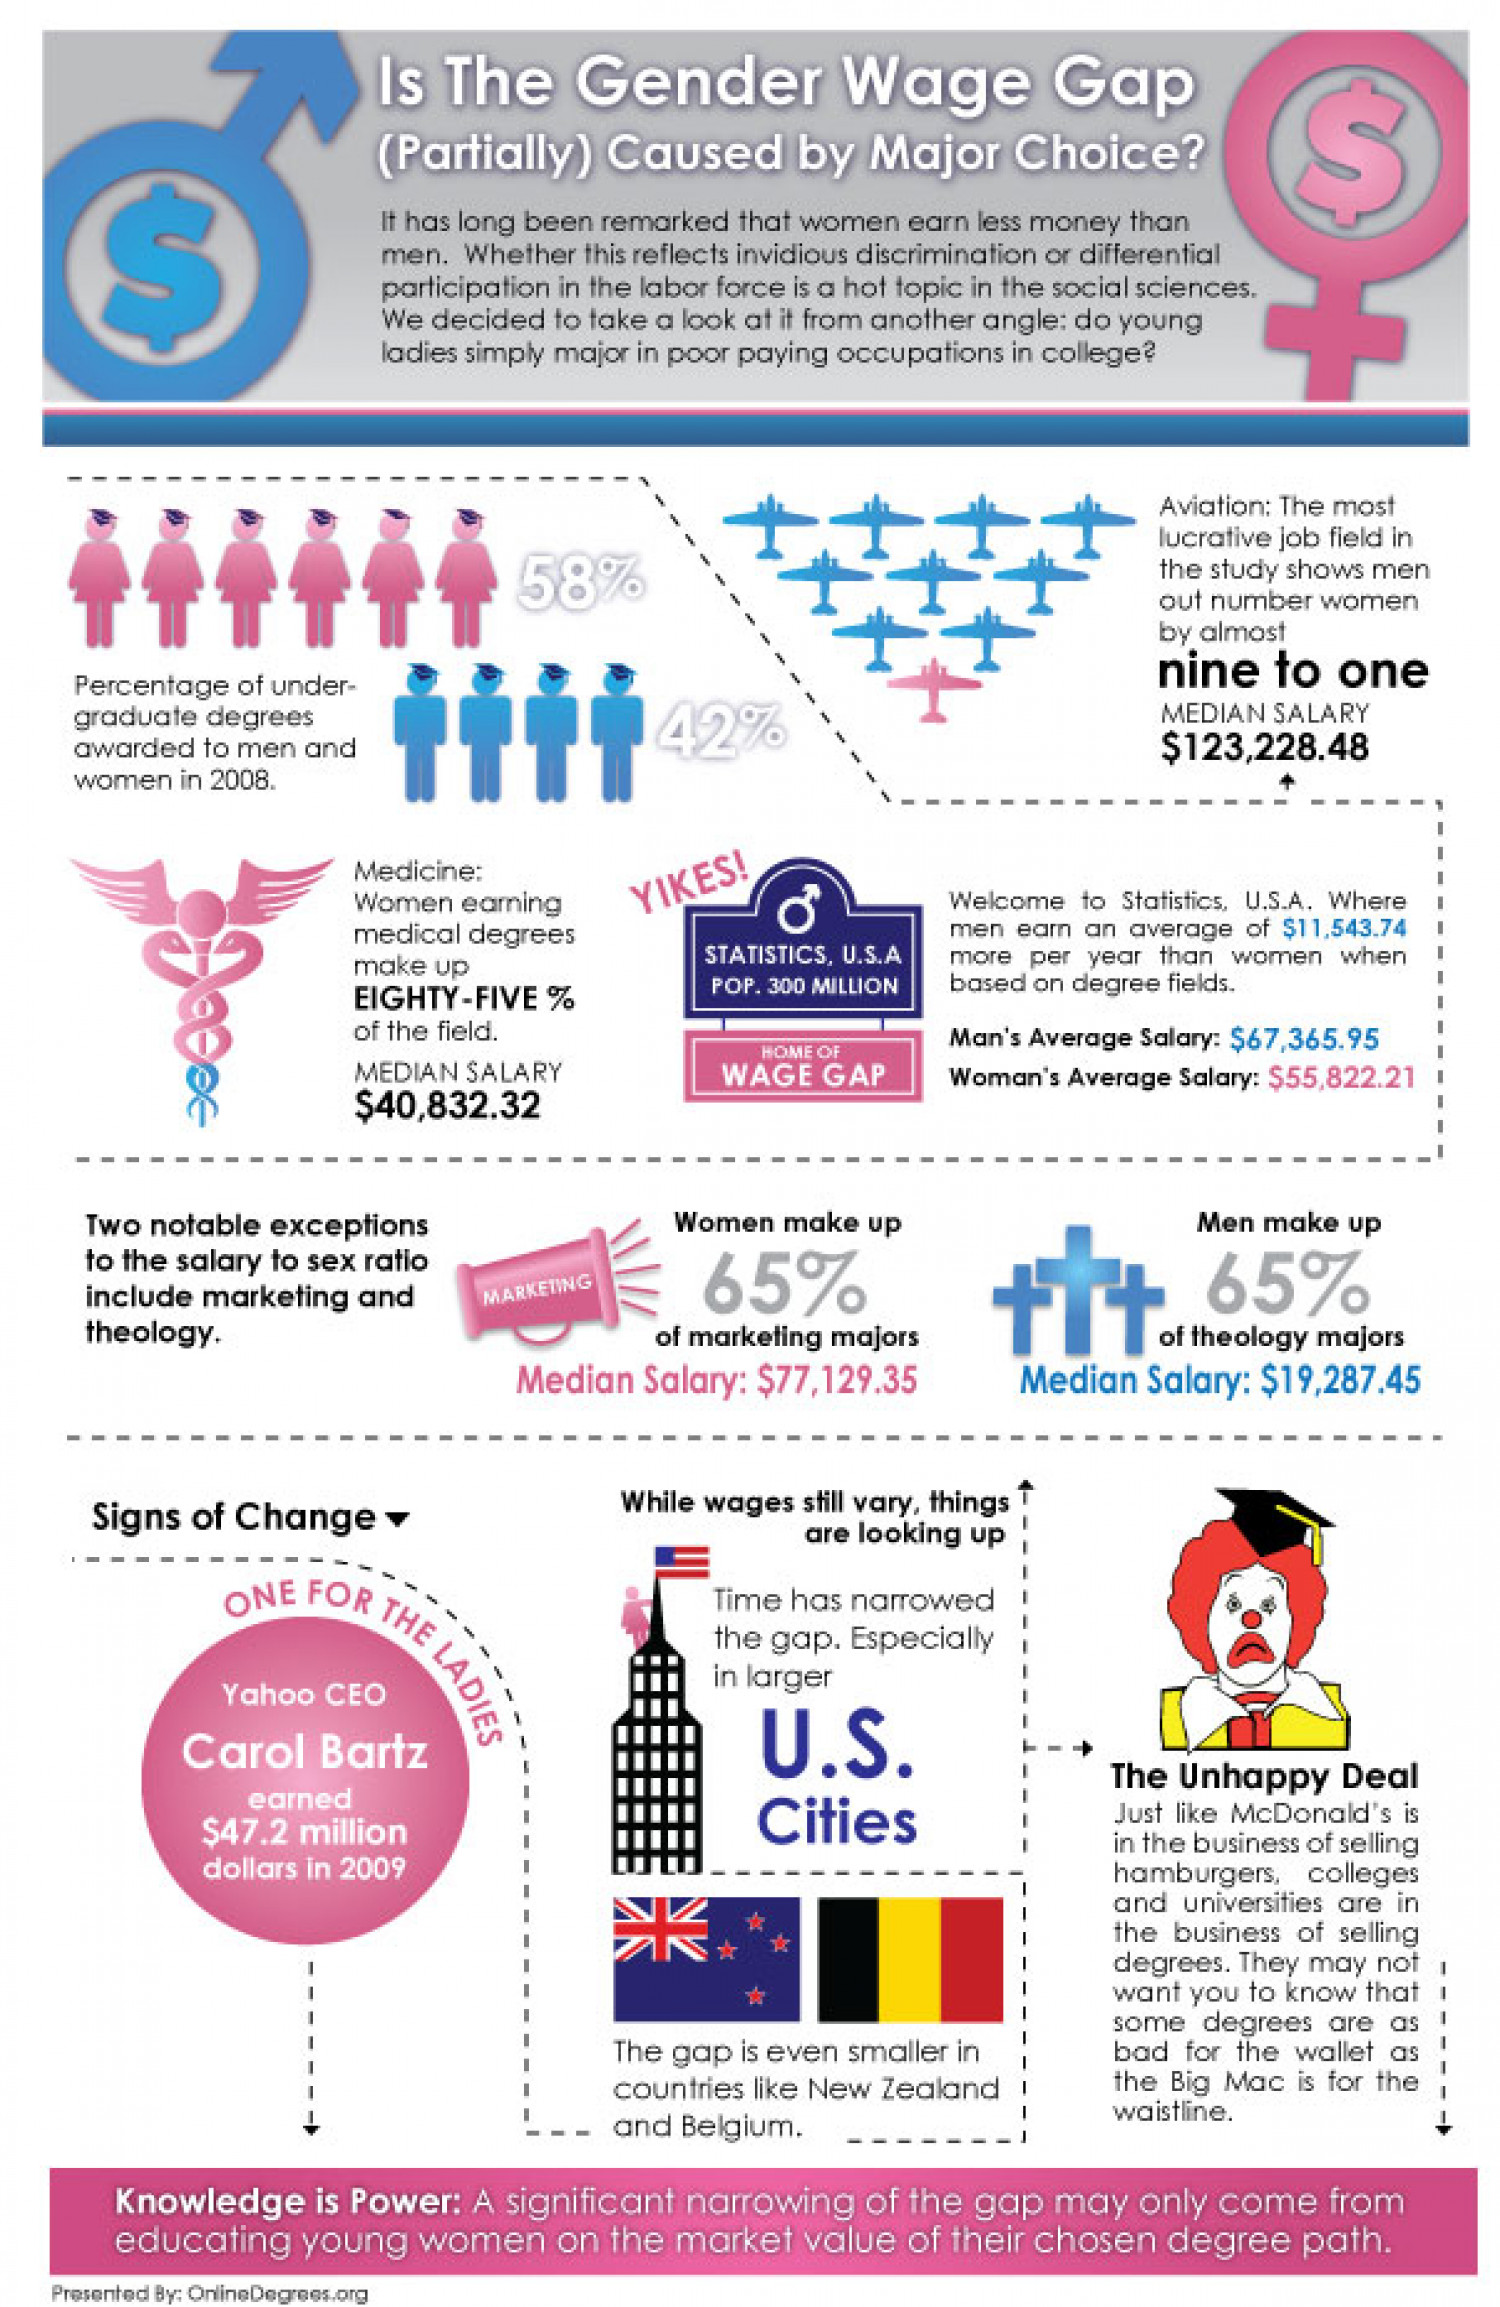 Is The Gender Wage Gap (Partially) Caused By Major Choice? Infographic